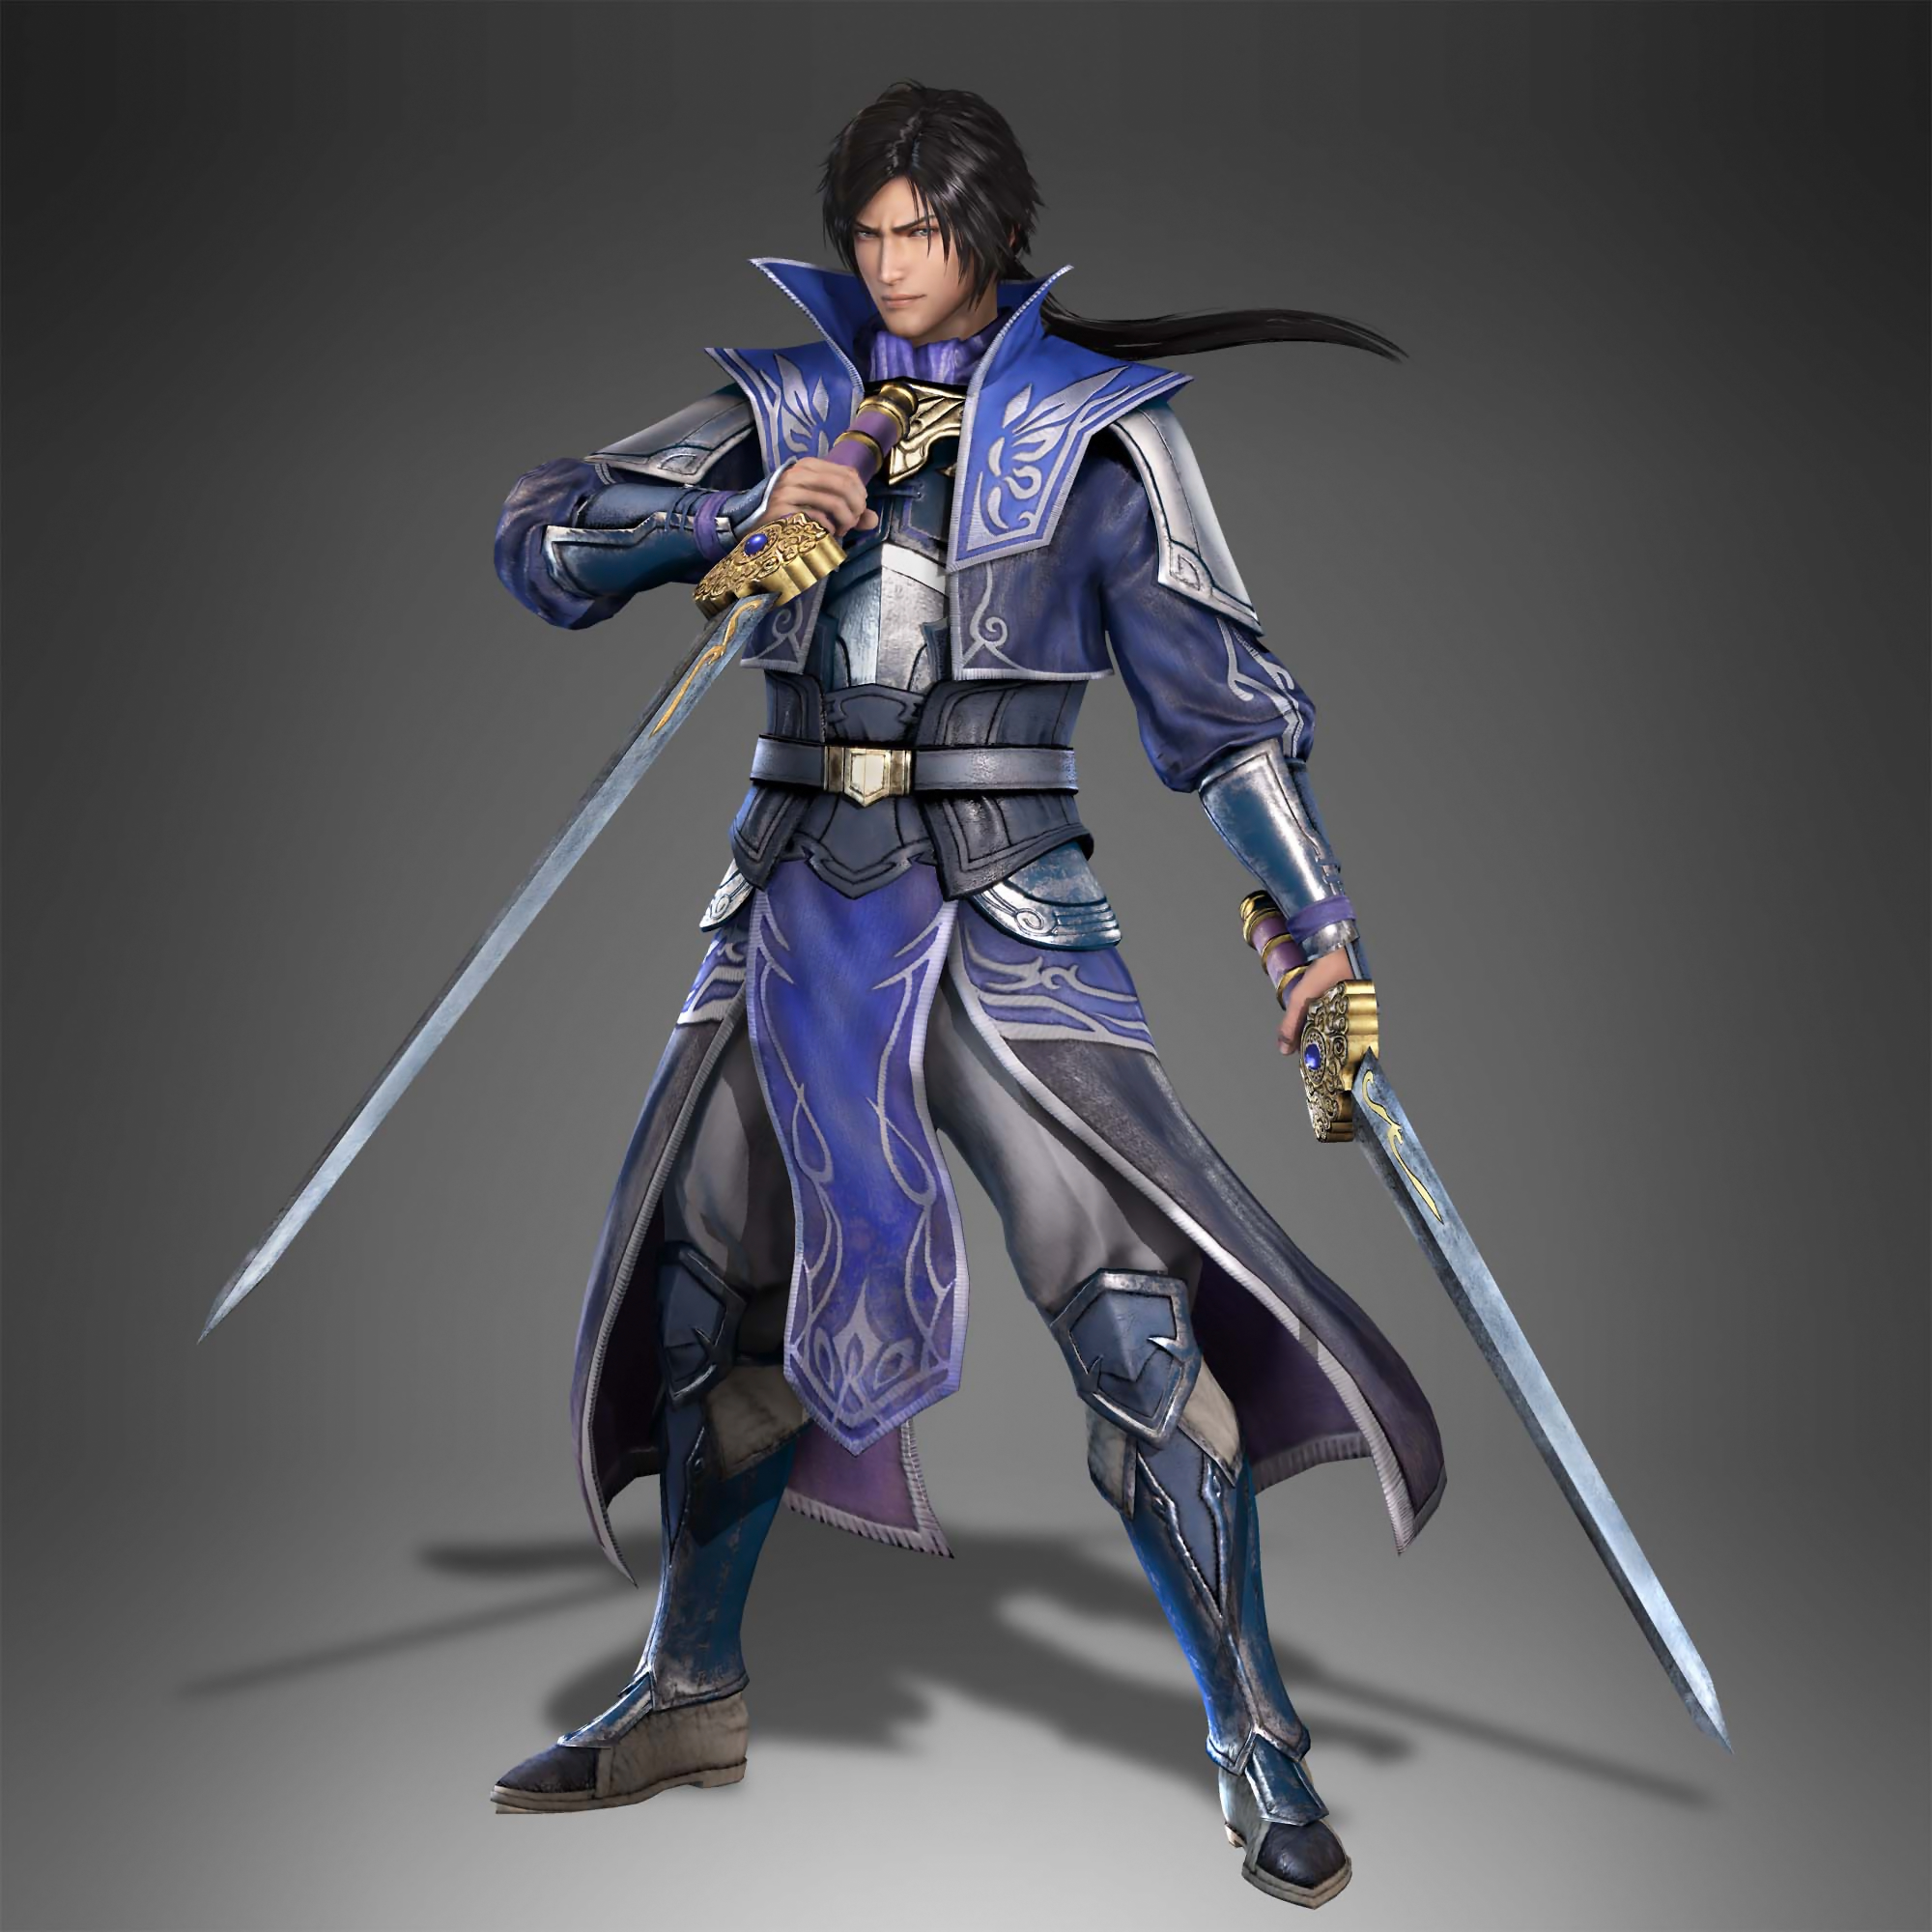 Voice Of Cao Cao - Dynasty Warriors | Behind The Voice Actors |Cao Cao Dynasty Warriors 8